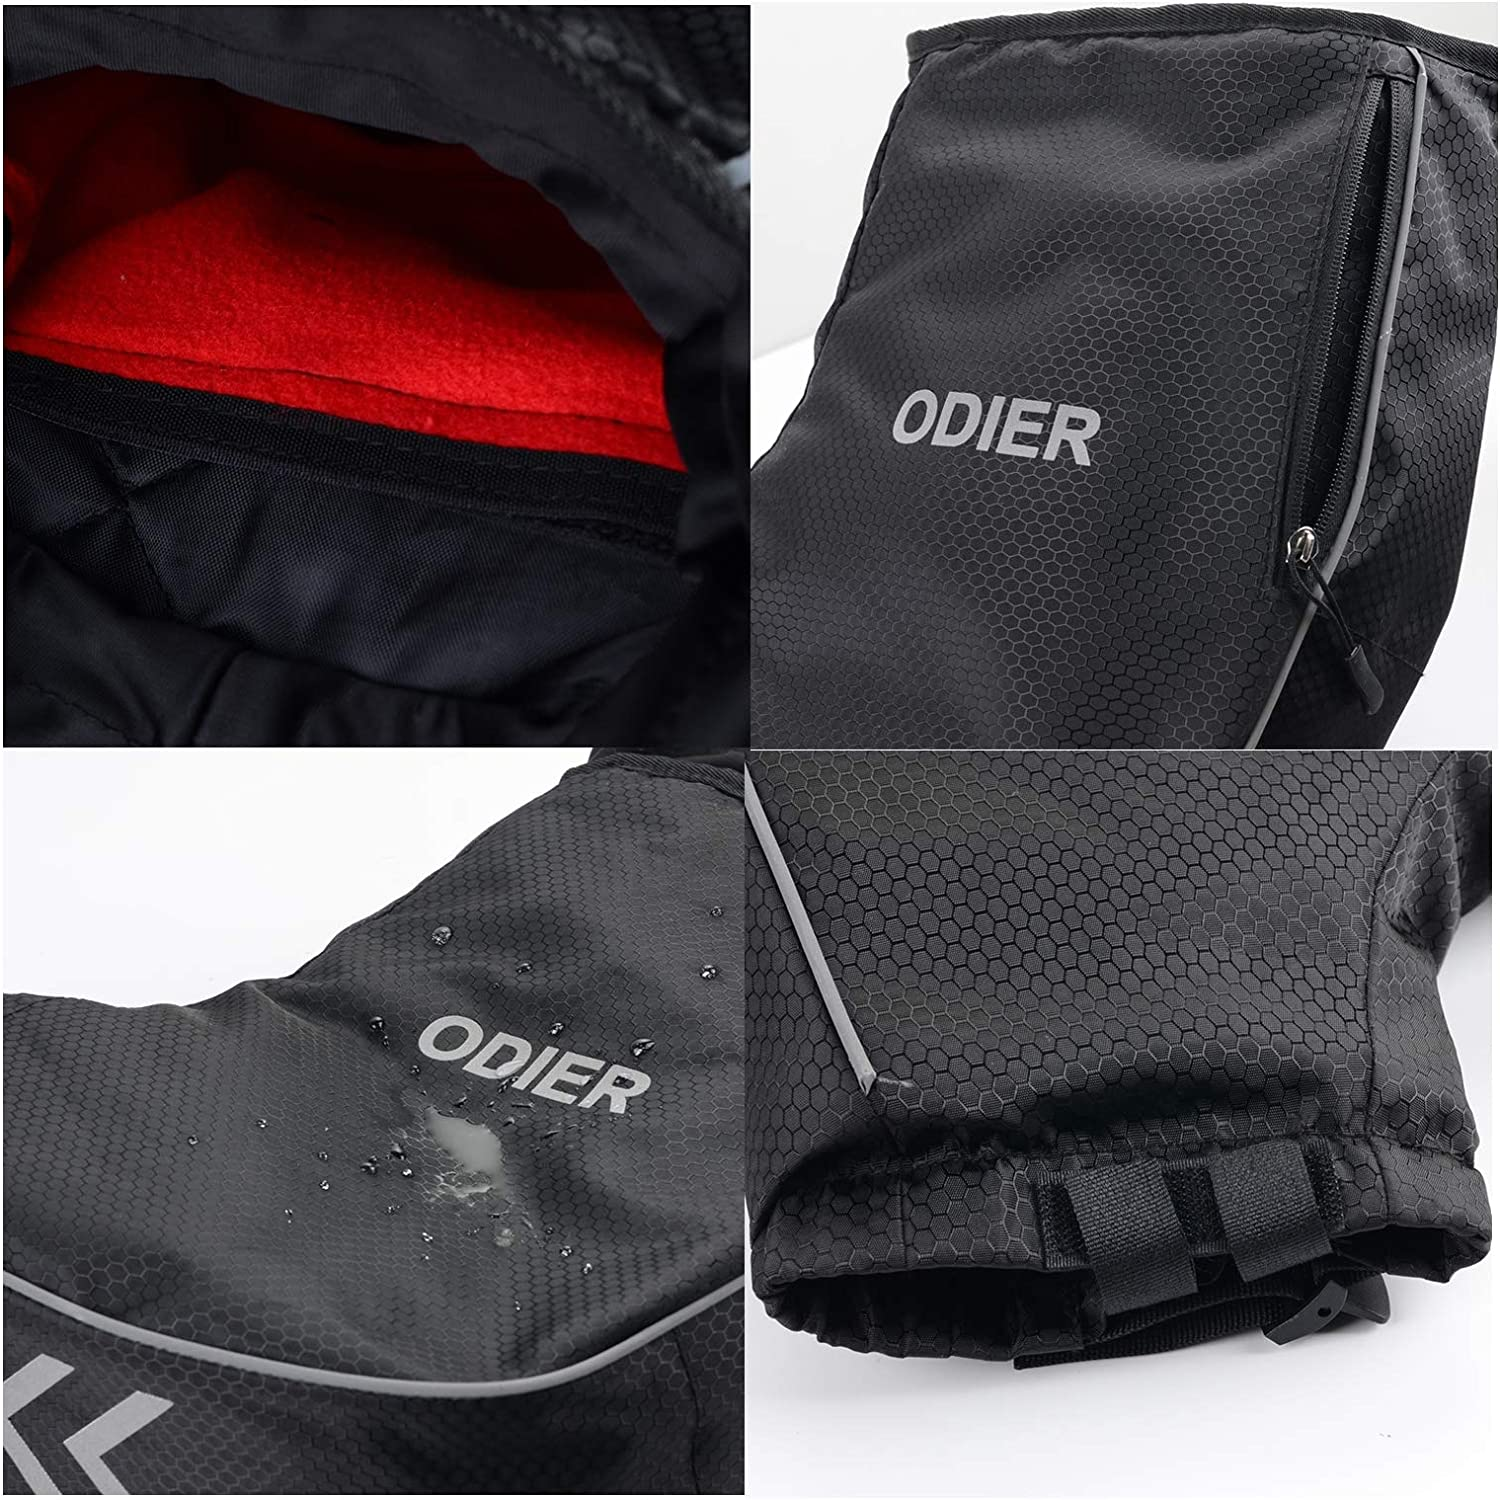 ODIER Bike Handlebar Mitts Fleece Liner Winter Fat Bike Mittens Extreme Cold Weather MTB Bicycle Commuter Bike Pogies Waterproof